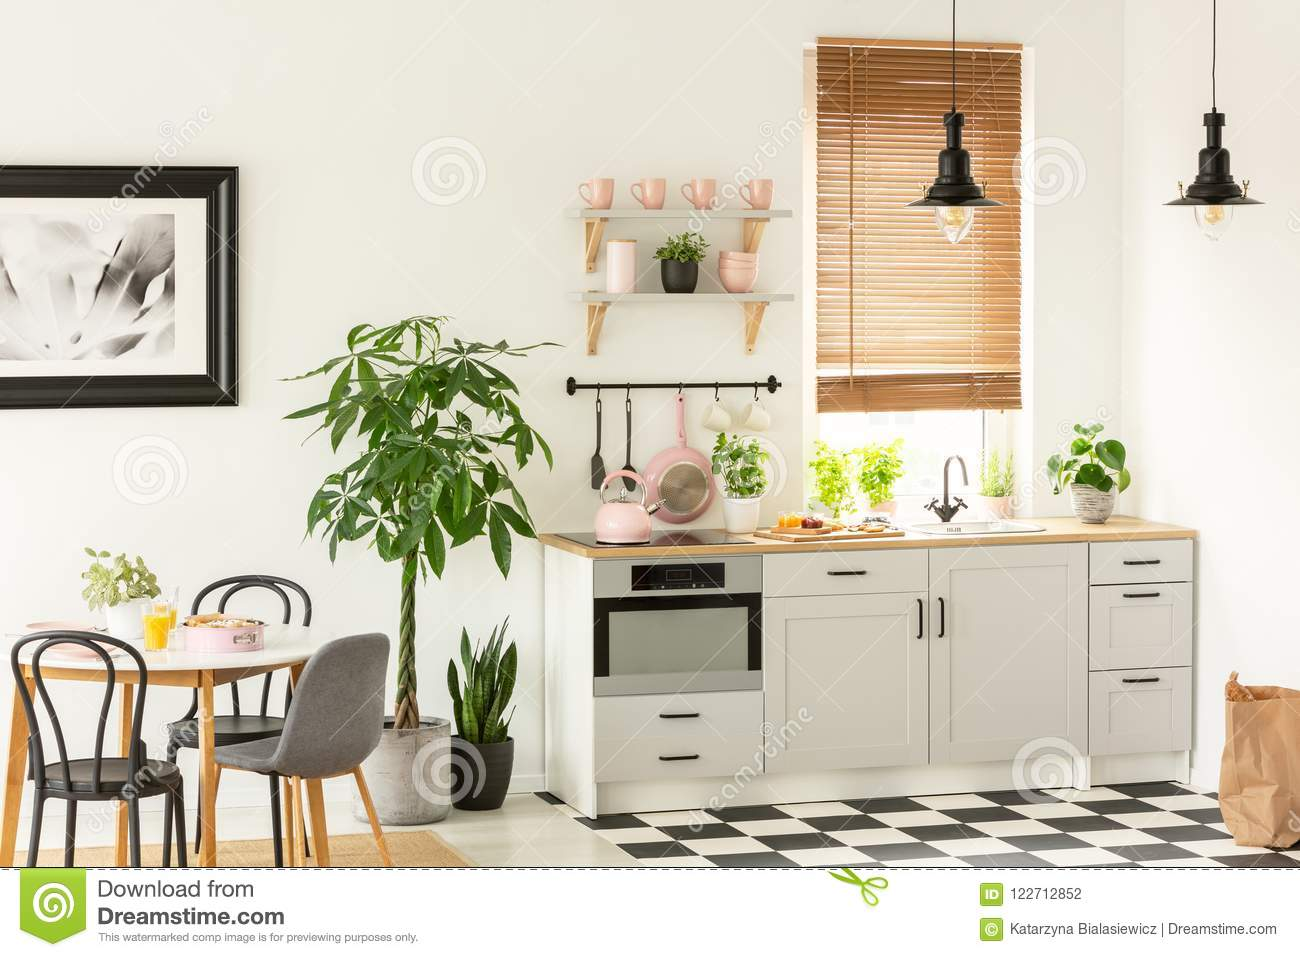 Modern Kitchen Chairs Real Photo Of A Modern Kitchen Interior With Cupboards Plants